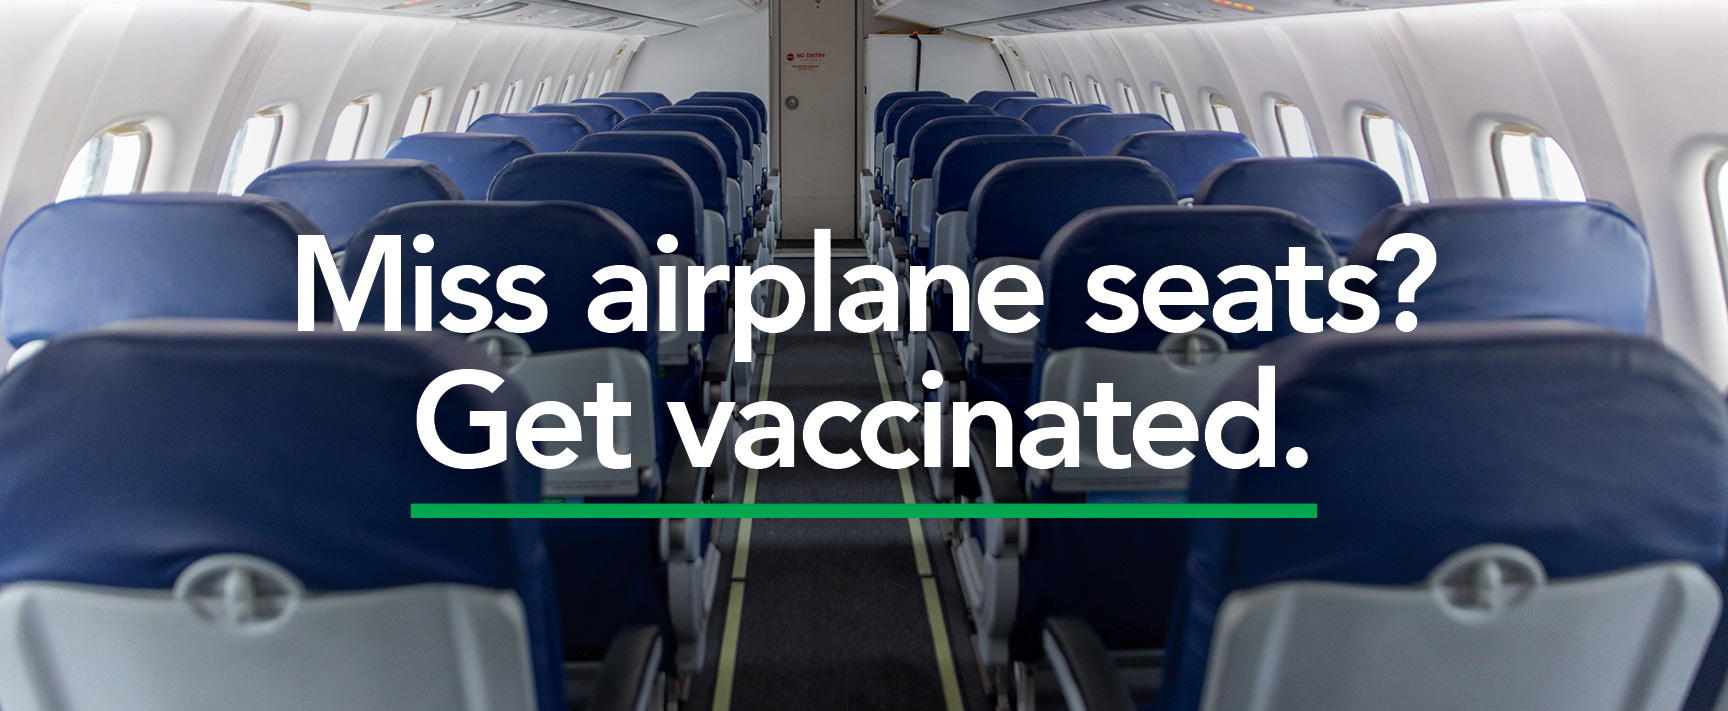 miss airplane seats? get vaccinated